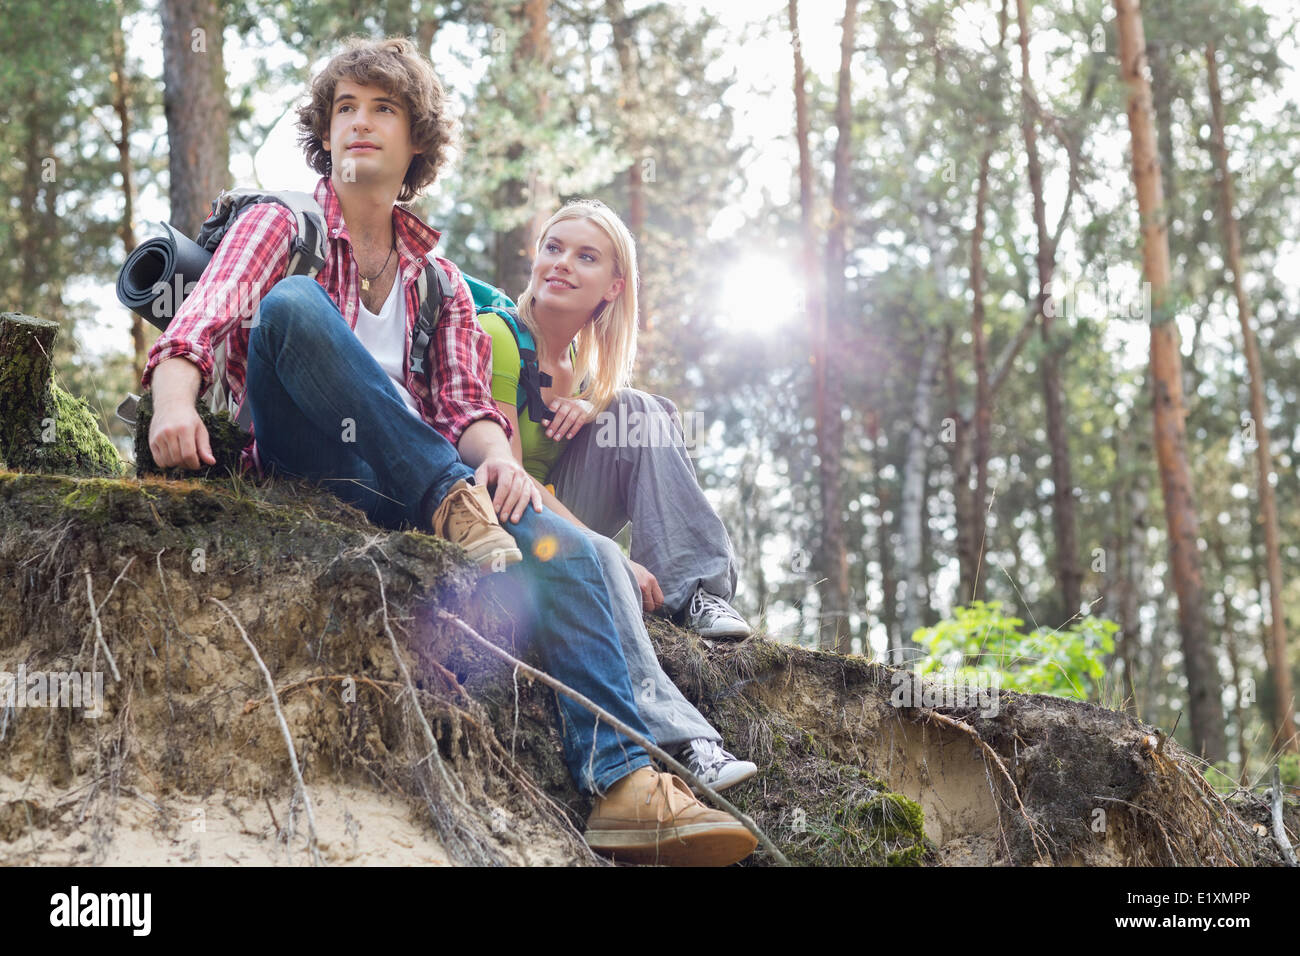 Young hiking couple sitting on edge of cliff in forest - Stock Image